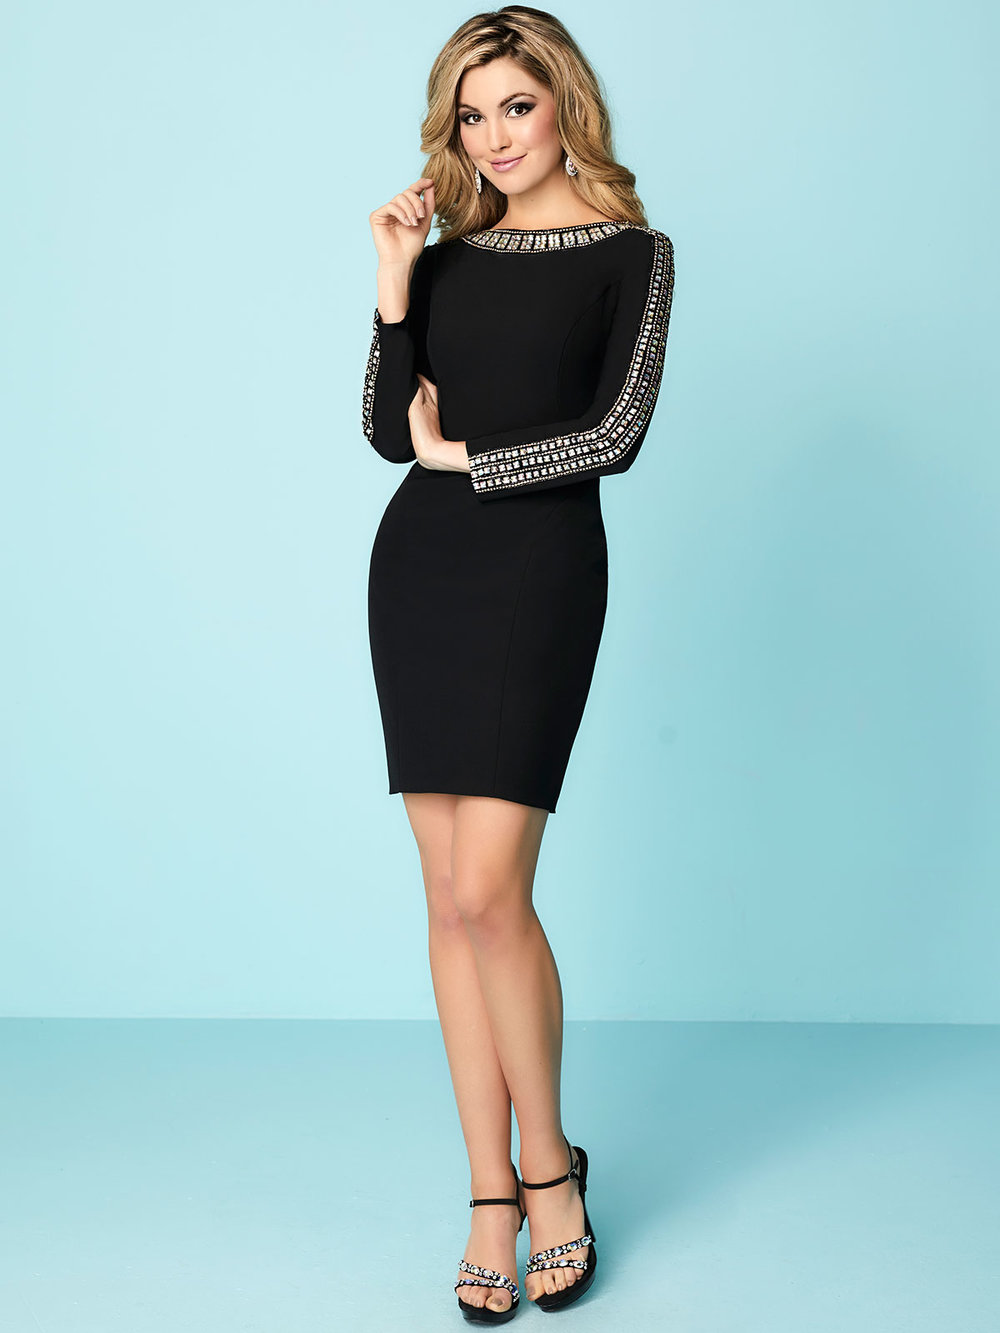 hannah-s-27143-sleeved-cocktail-dress-4.jpg